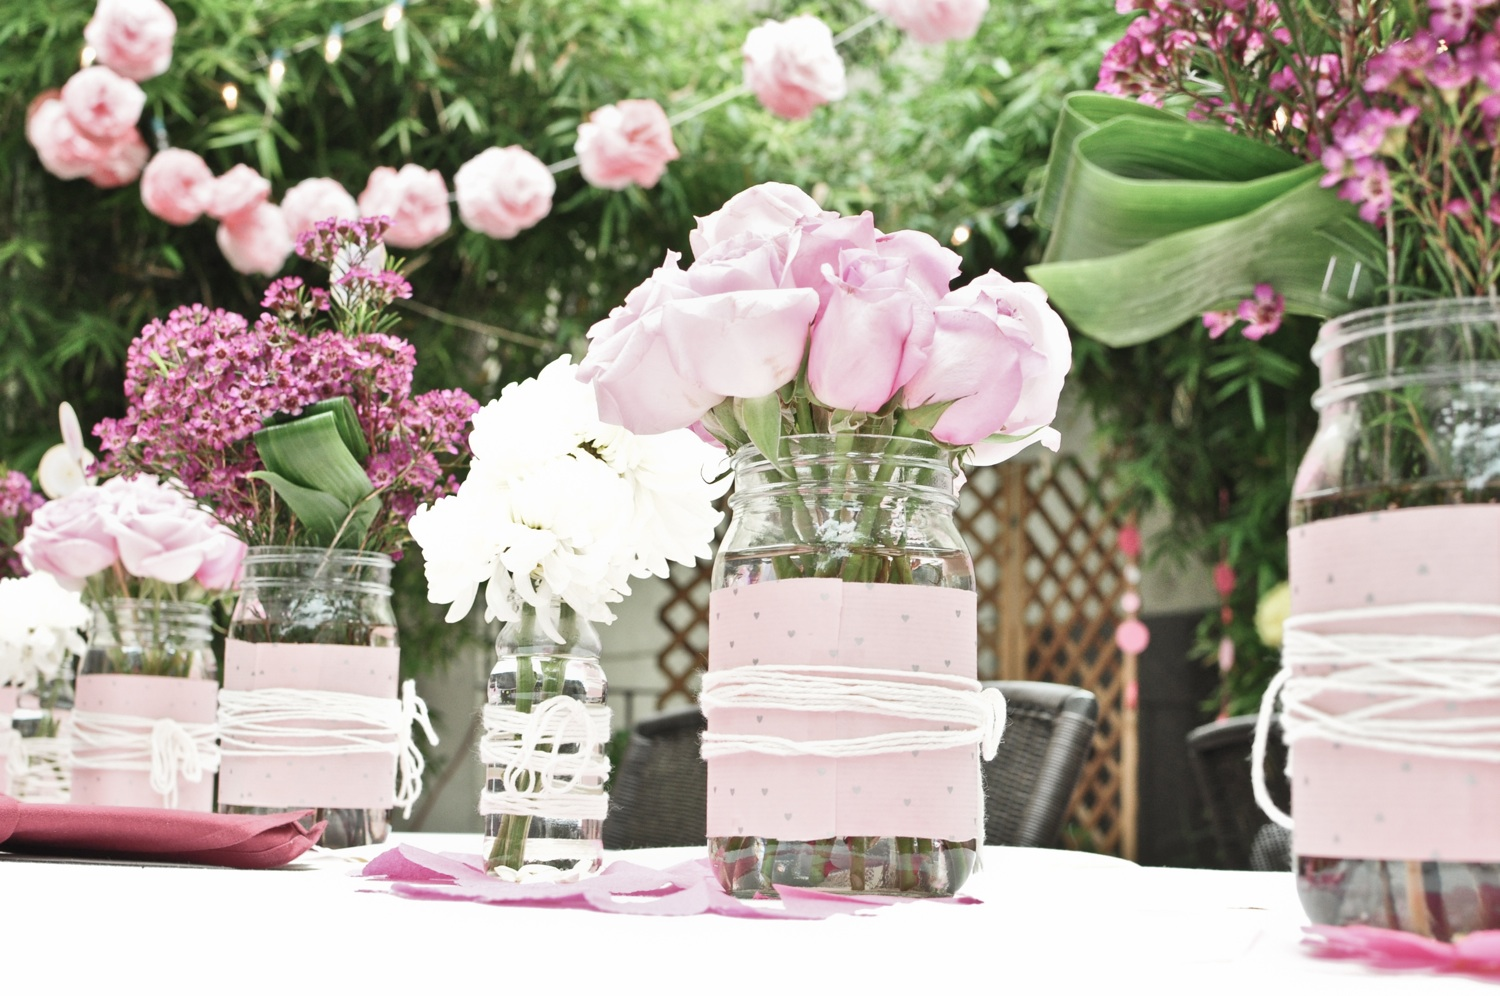 How To Maintain Budget On Wedding Flowers?